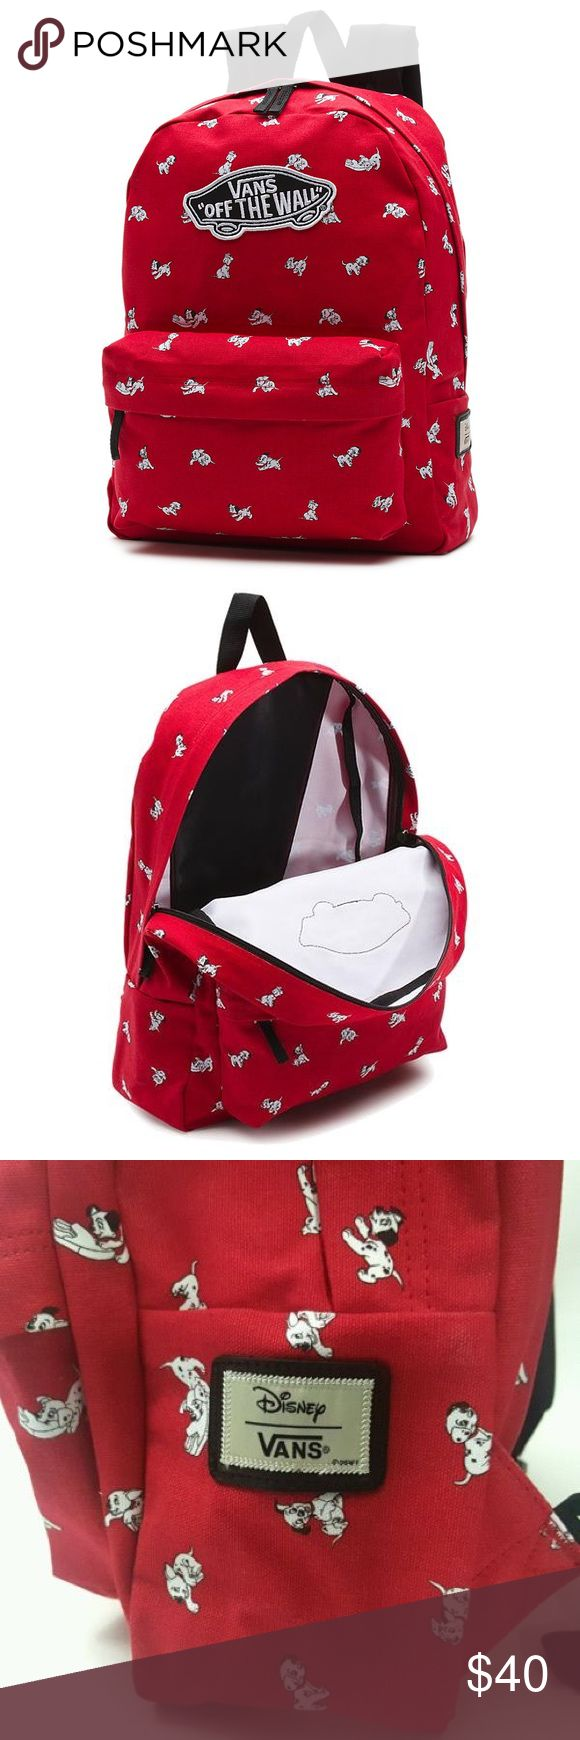 NWT Vans 101 Dalmatian backpack NEW WITH TAGS. LIMITED EDITION. TAGS STILL ON. CAN NOT FIND THIS BACKPACK IN STORES ANYMORE. PRICE IS FIRM. Vans Bags Backpacks